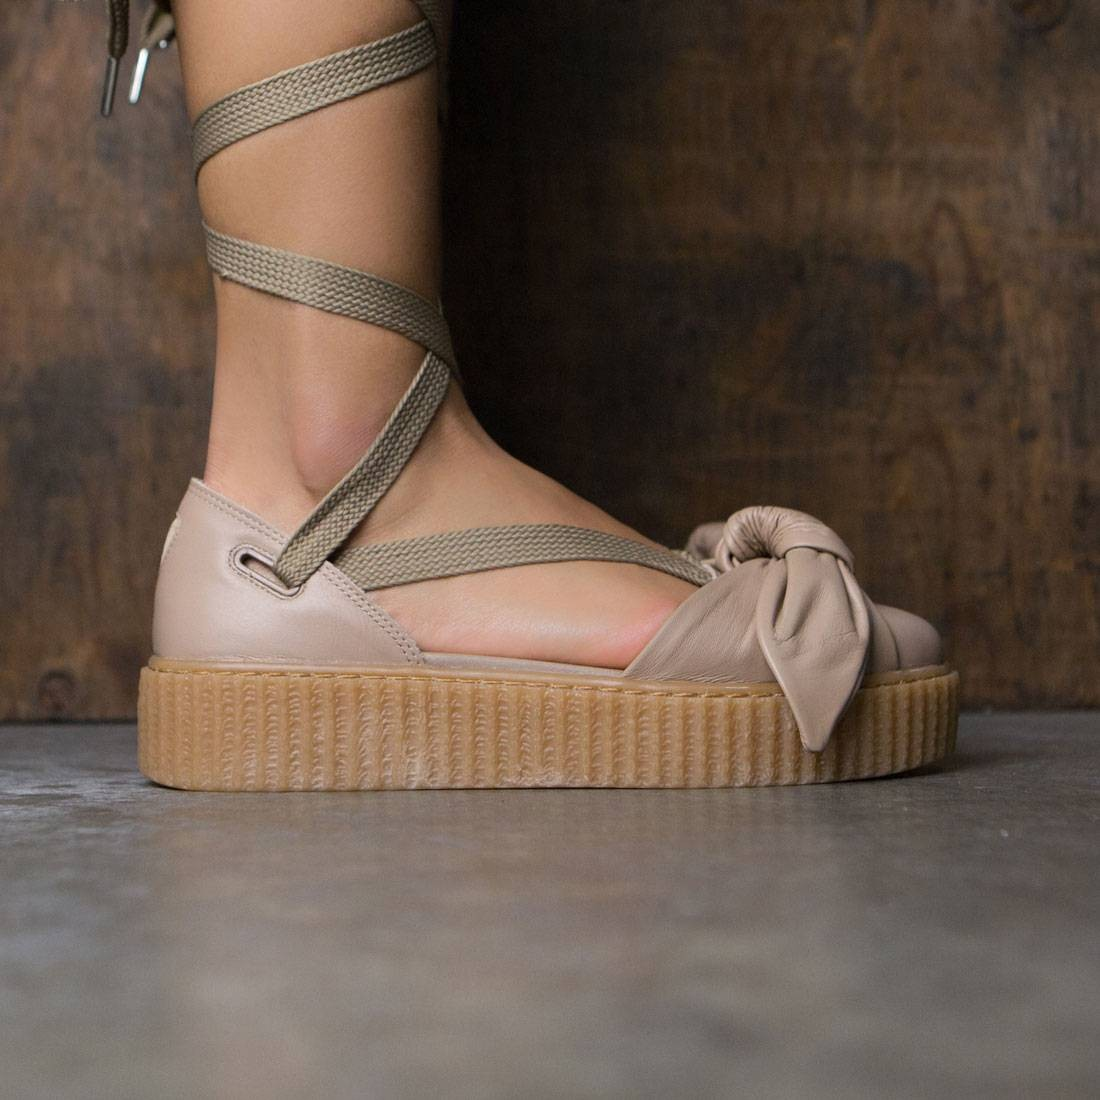 competitive price bb39a 89c90 Puma x Fenty By Rihanna Women Bow Creeper Sandal (natural / oatmeal)